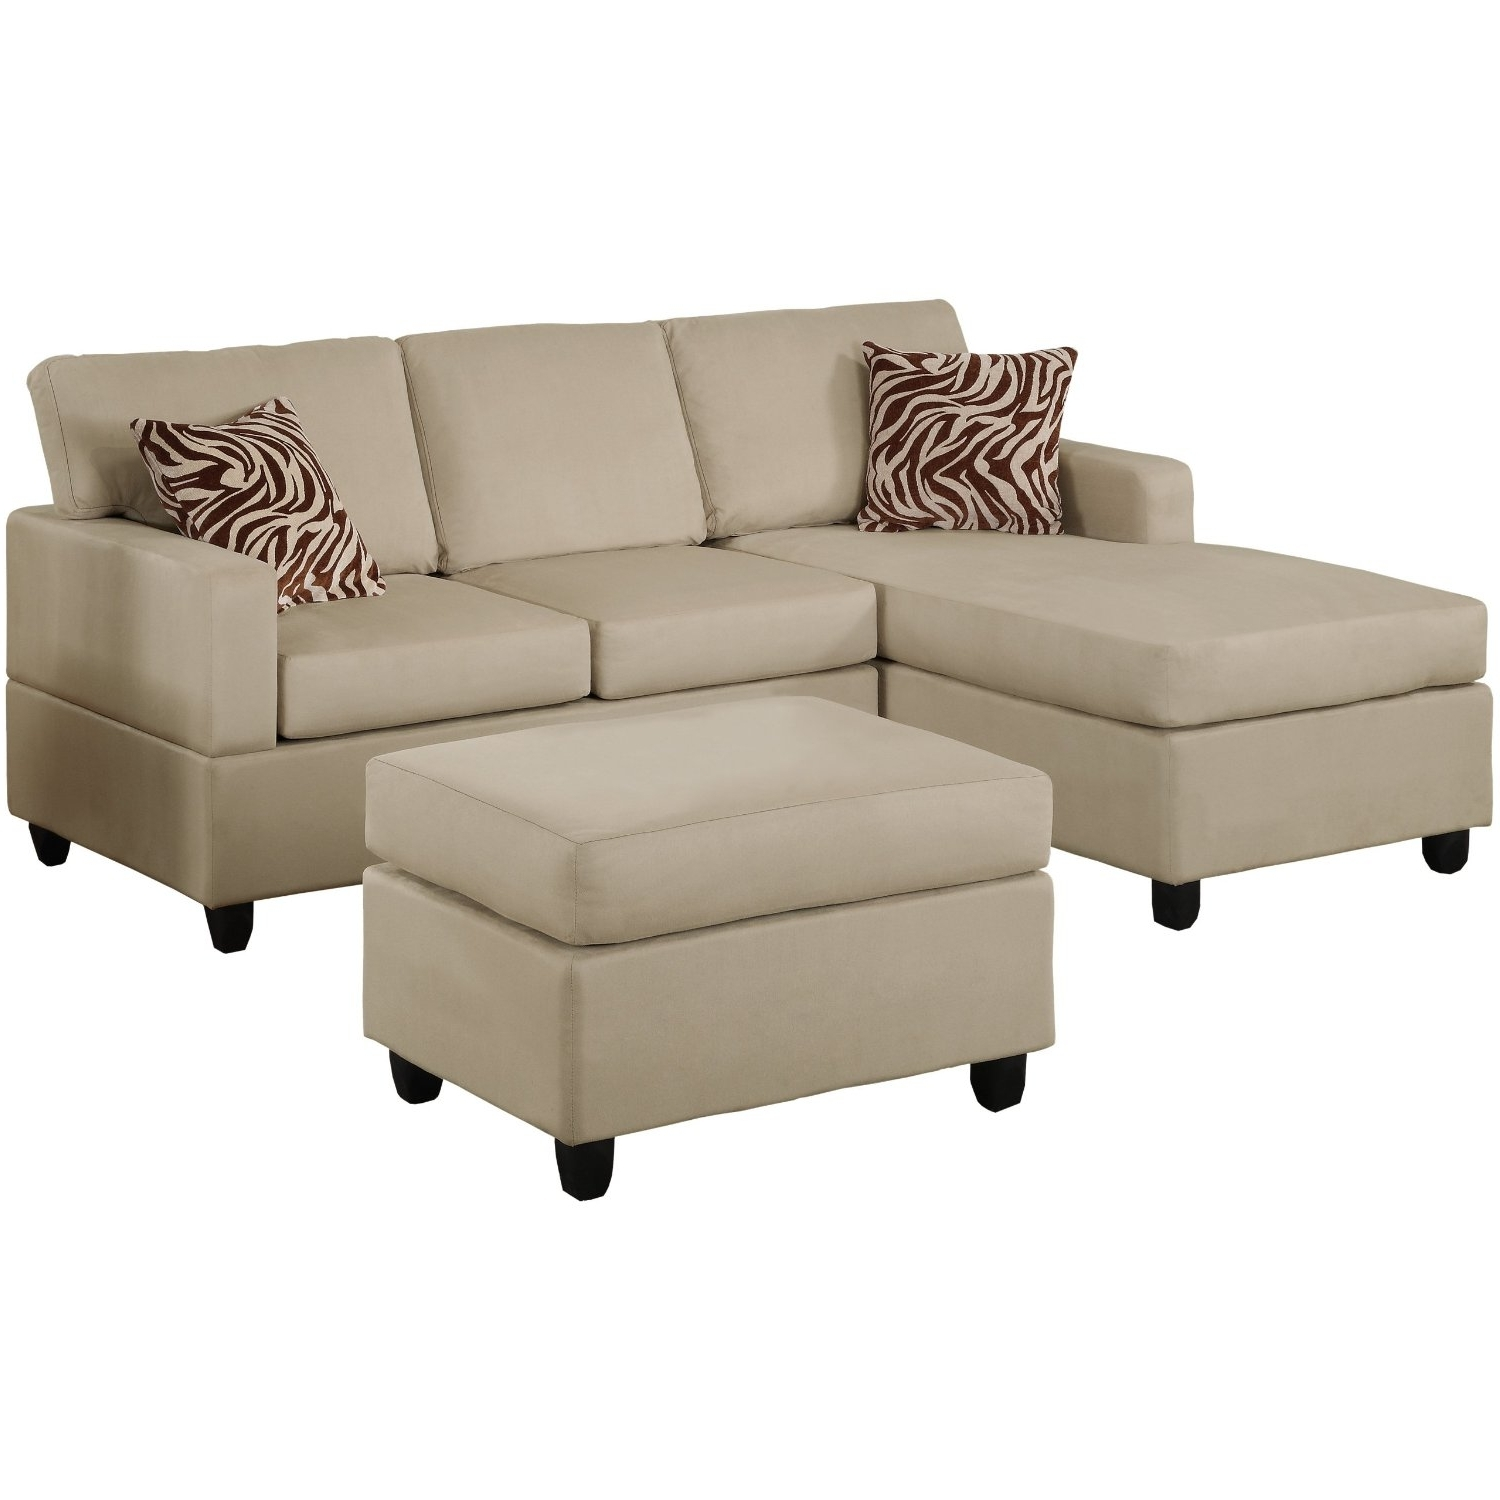 Most Recently Released Thomasville Sectional Sofas Design — Fabrizio Design For Thomasville Sectional Sofas (View 3 of 15)